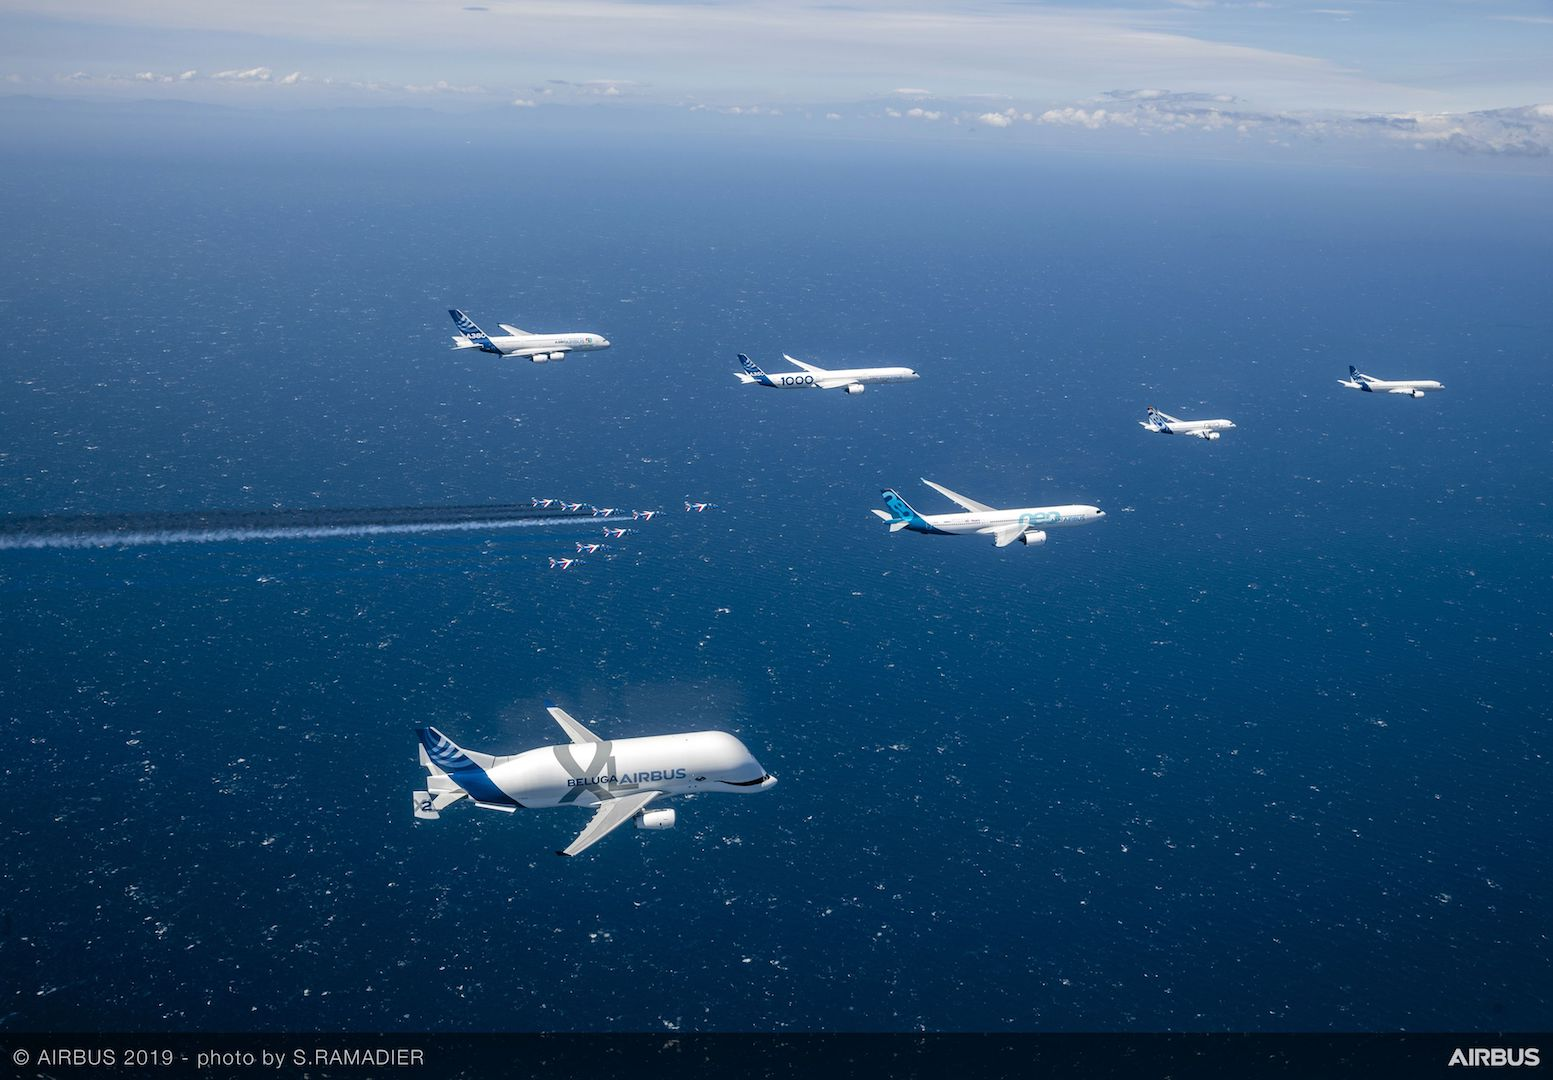 Airbus50 Formation over Med